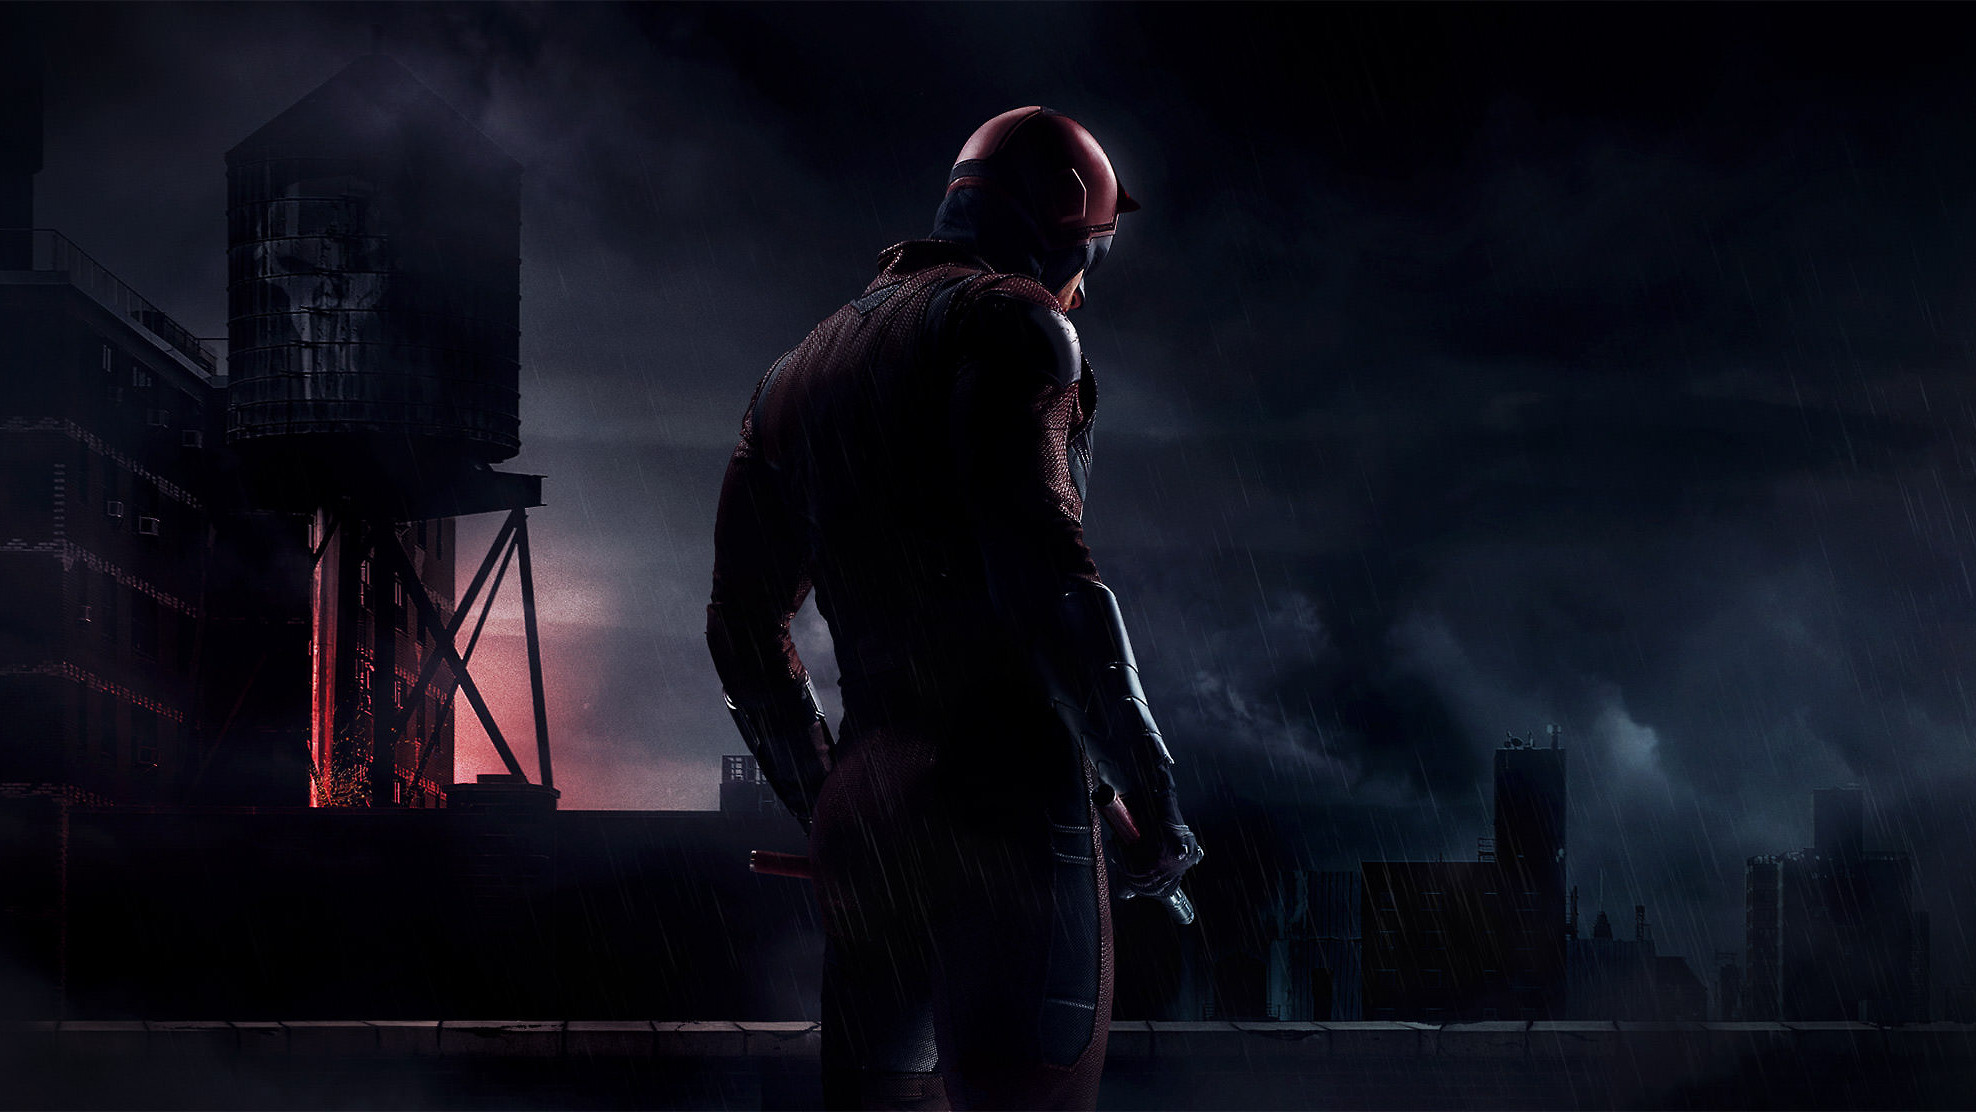 Punishment Finds DAREDEVIL In New Season 2 Motion Posters; Billboard Images  Revealed in HD